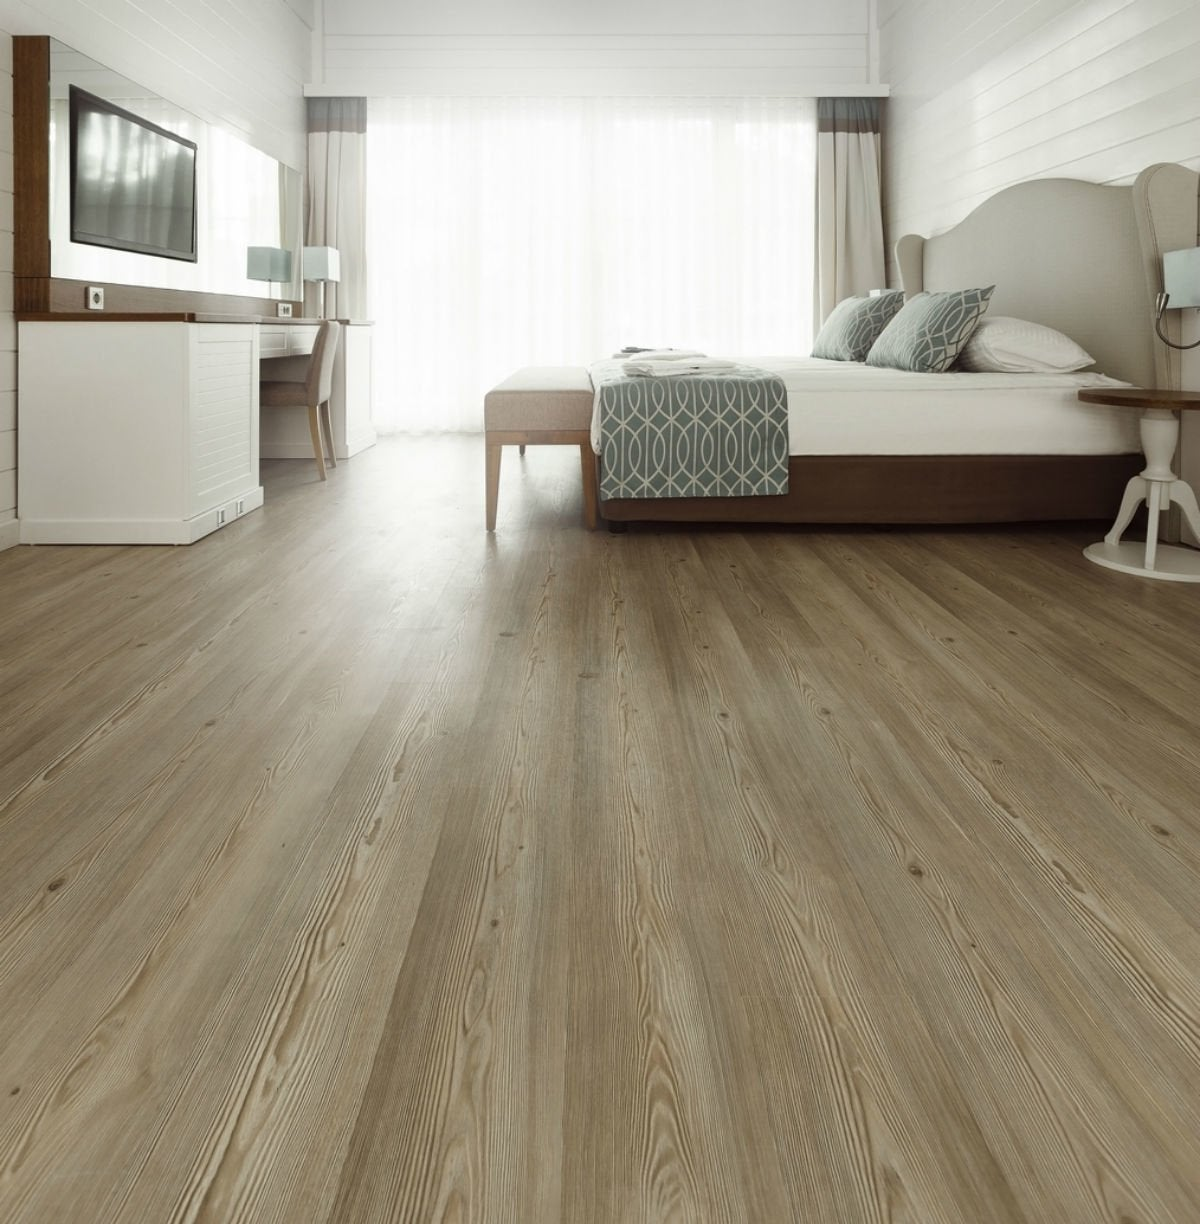 The 10 Pros and Cons of Laminate Flooring - Bob Vila